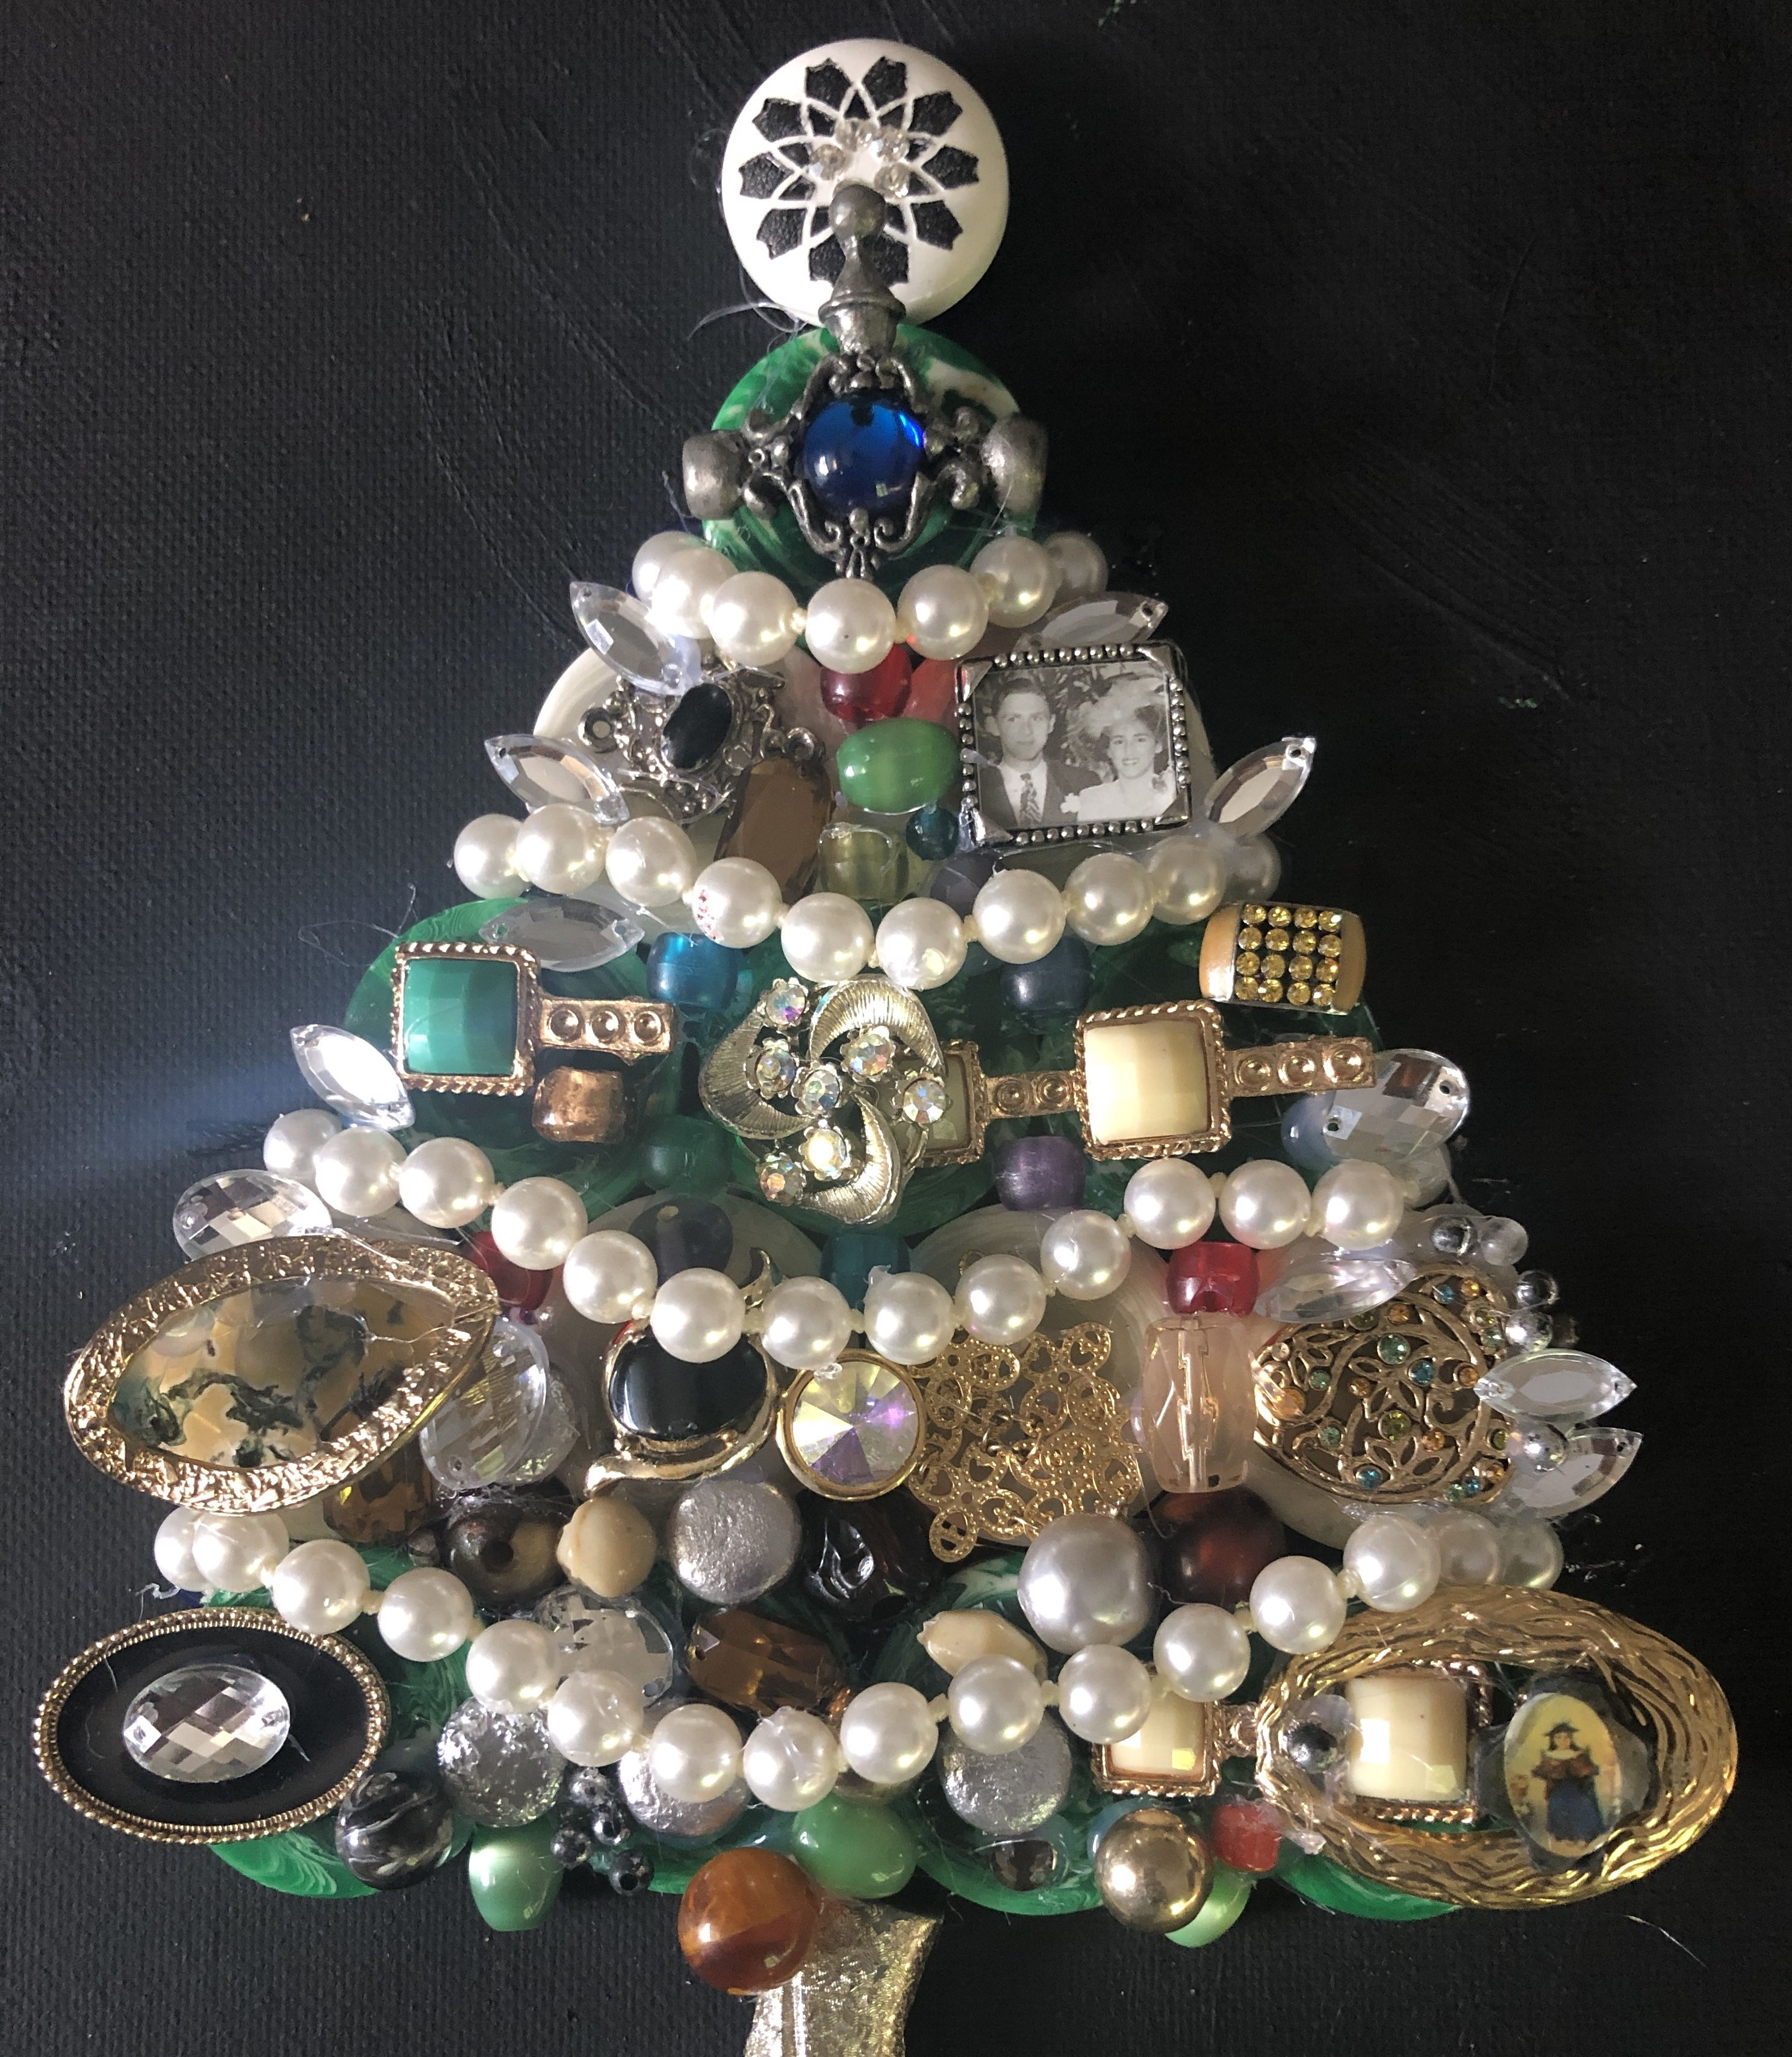 Kitschy Christmas Tree Made Of Jewelry Etsy In 2020 Jewelry Christmas Tree Eclectic Christmas Trees Unusual Christmas Trees